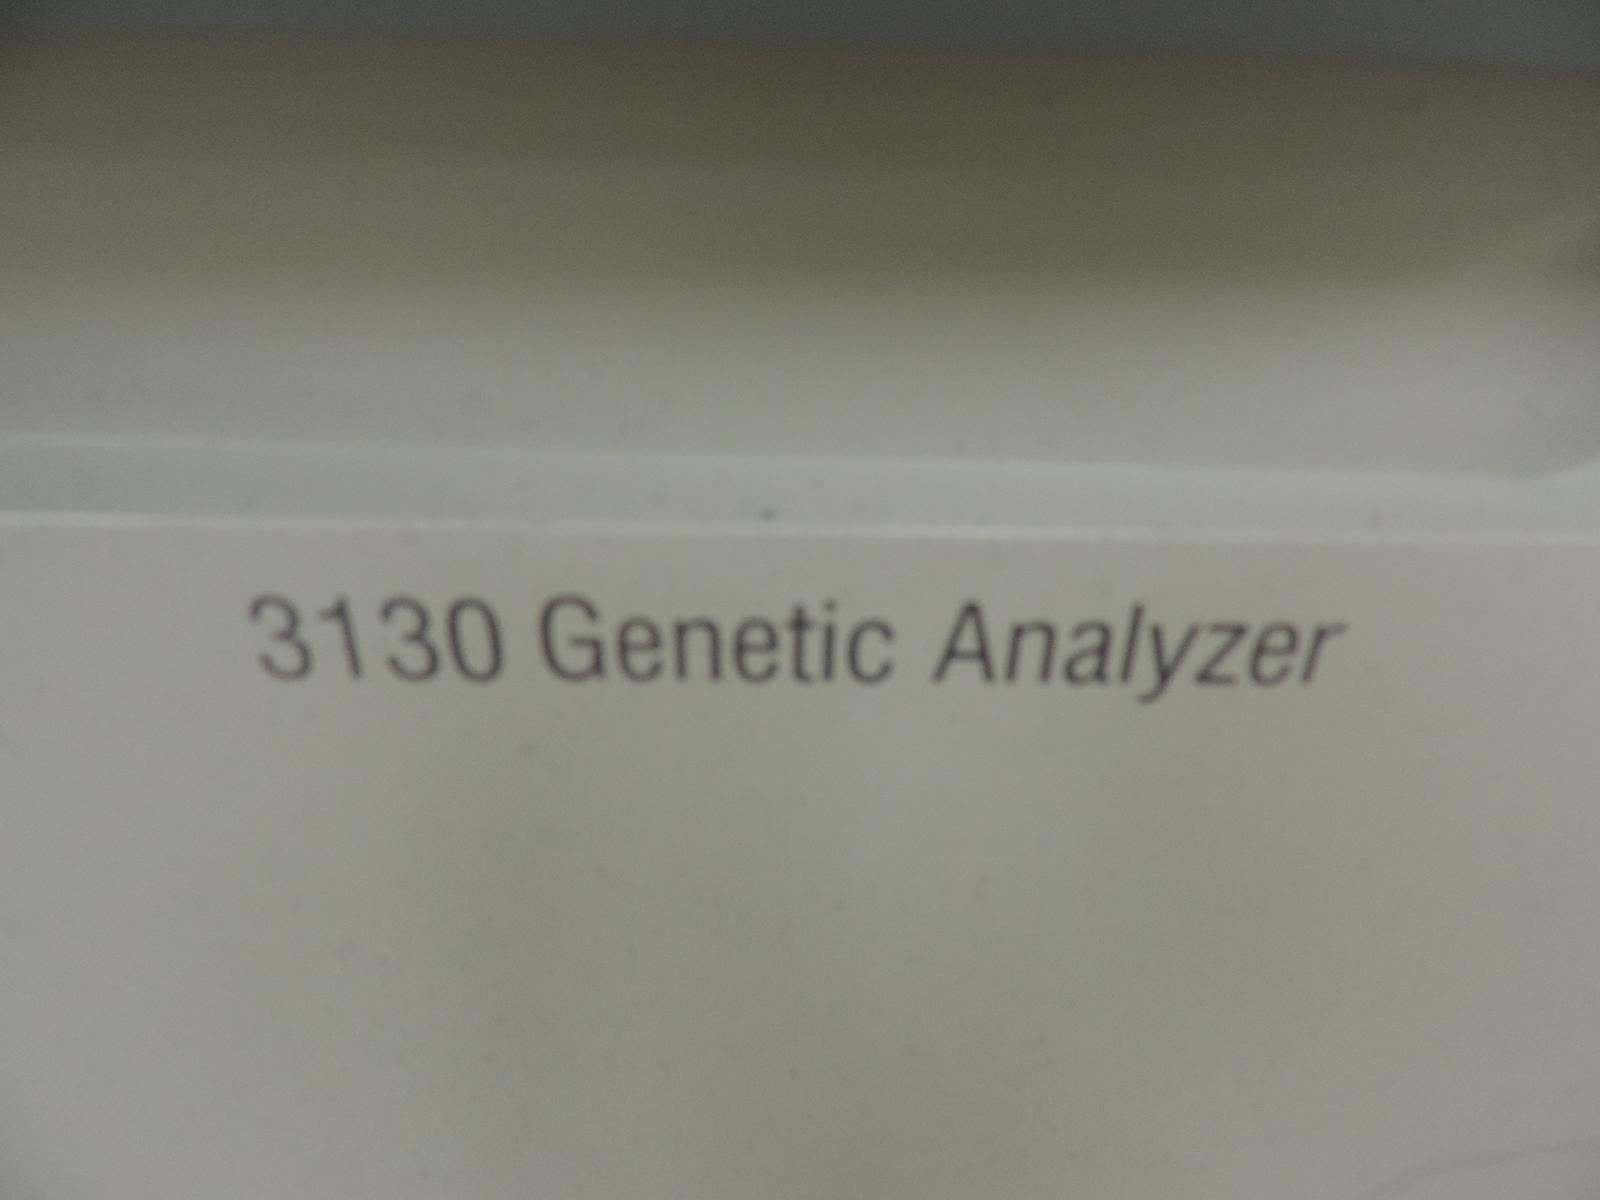 ABI3130 Genetic Analyzer